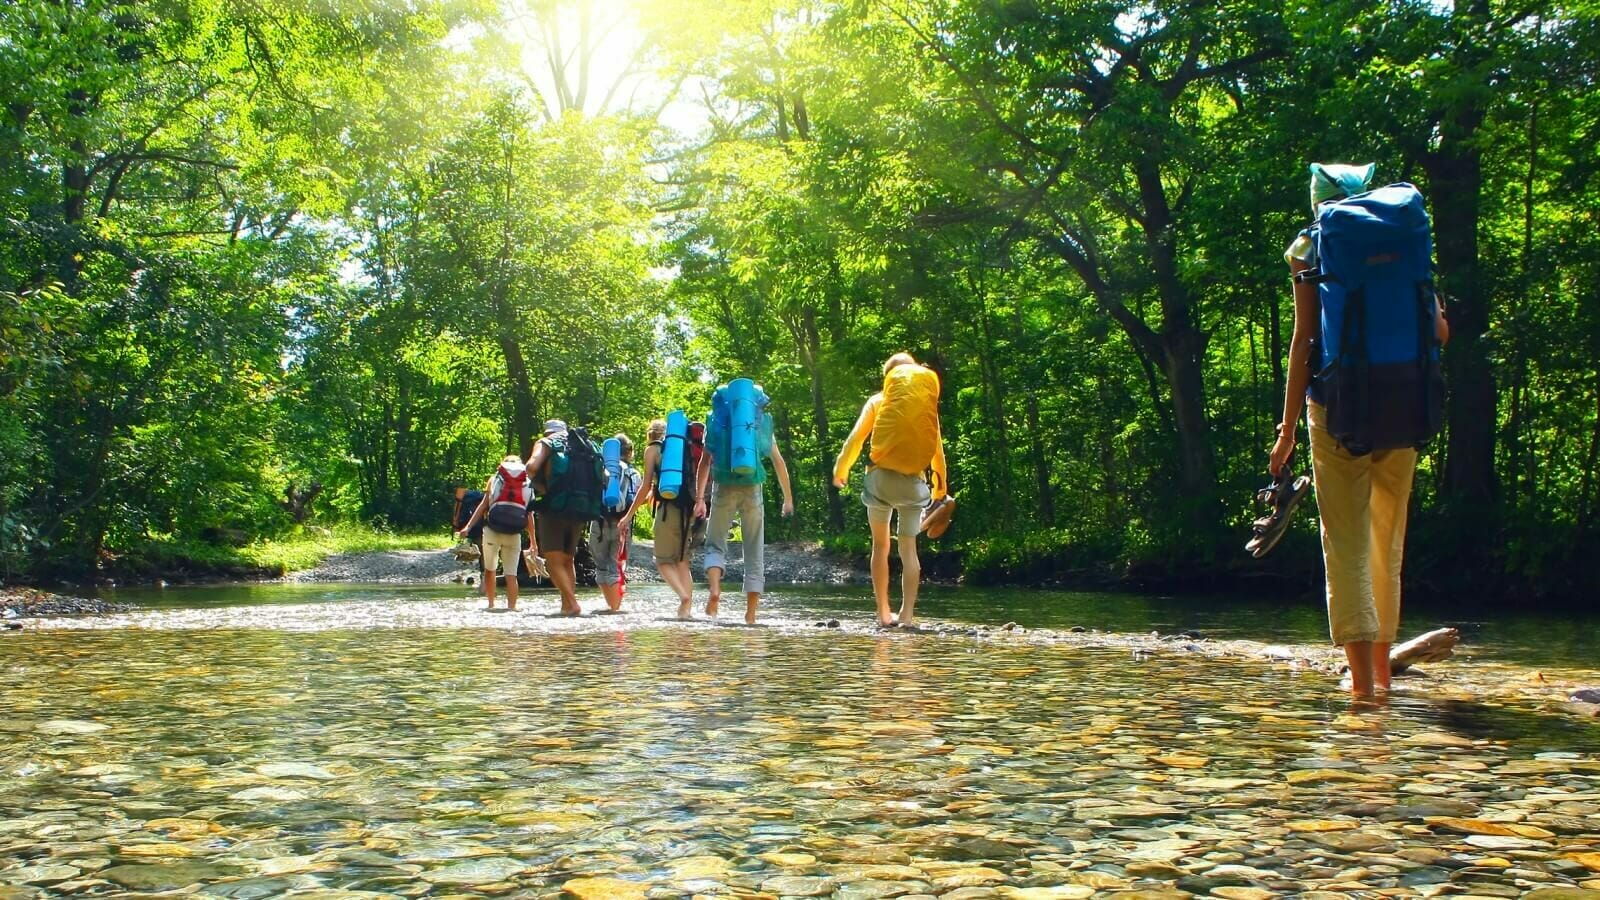 Group of hikers traversing a shallow, rocky river in summer sunshine